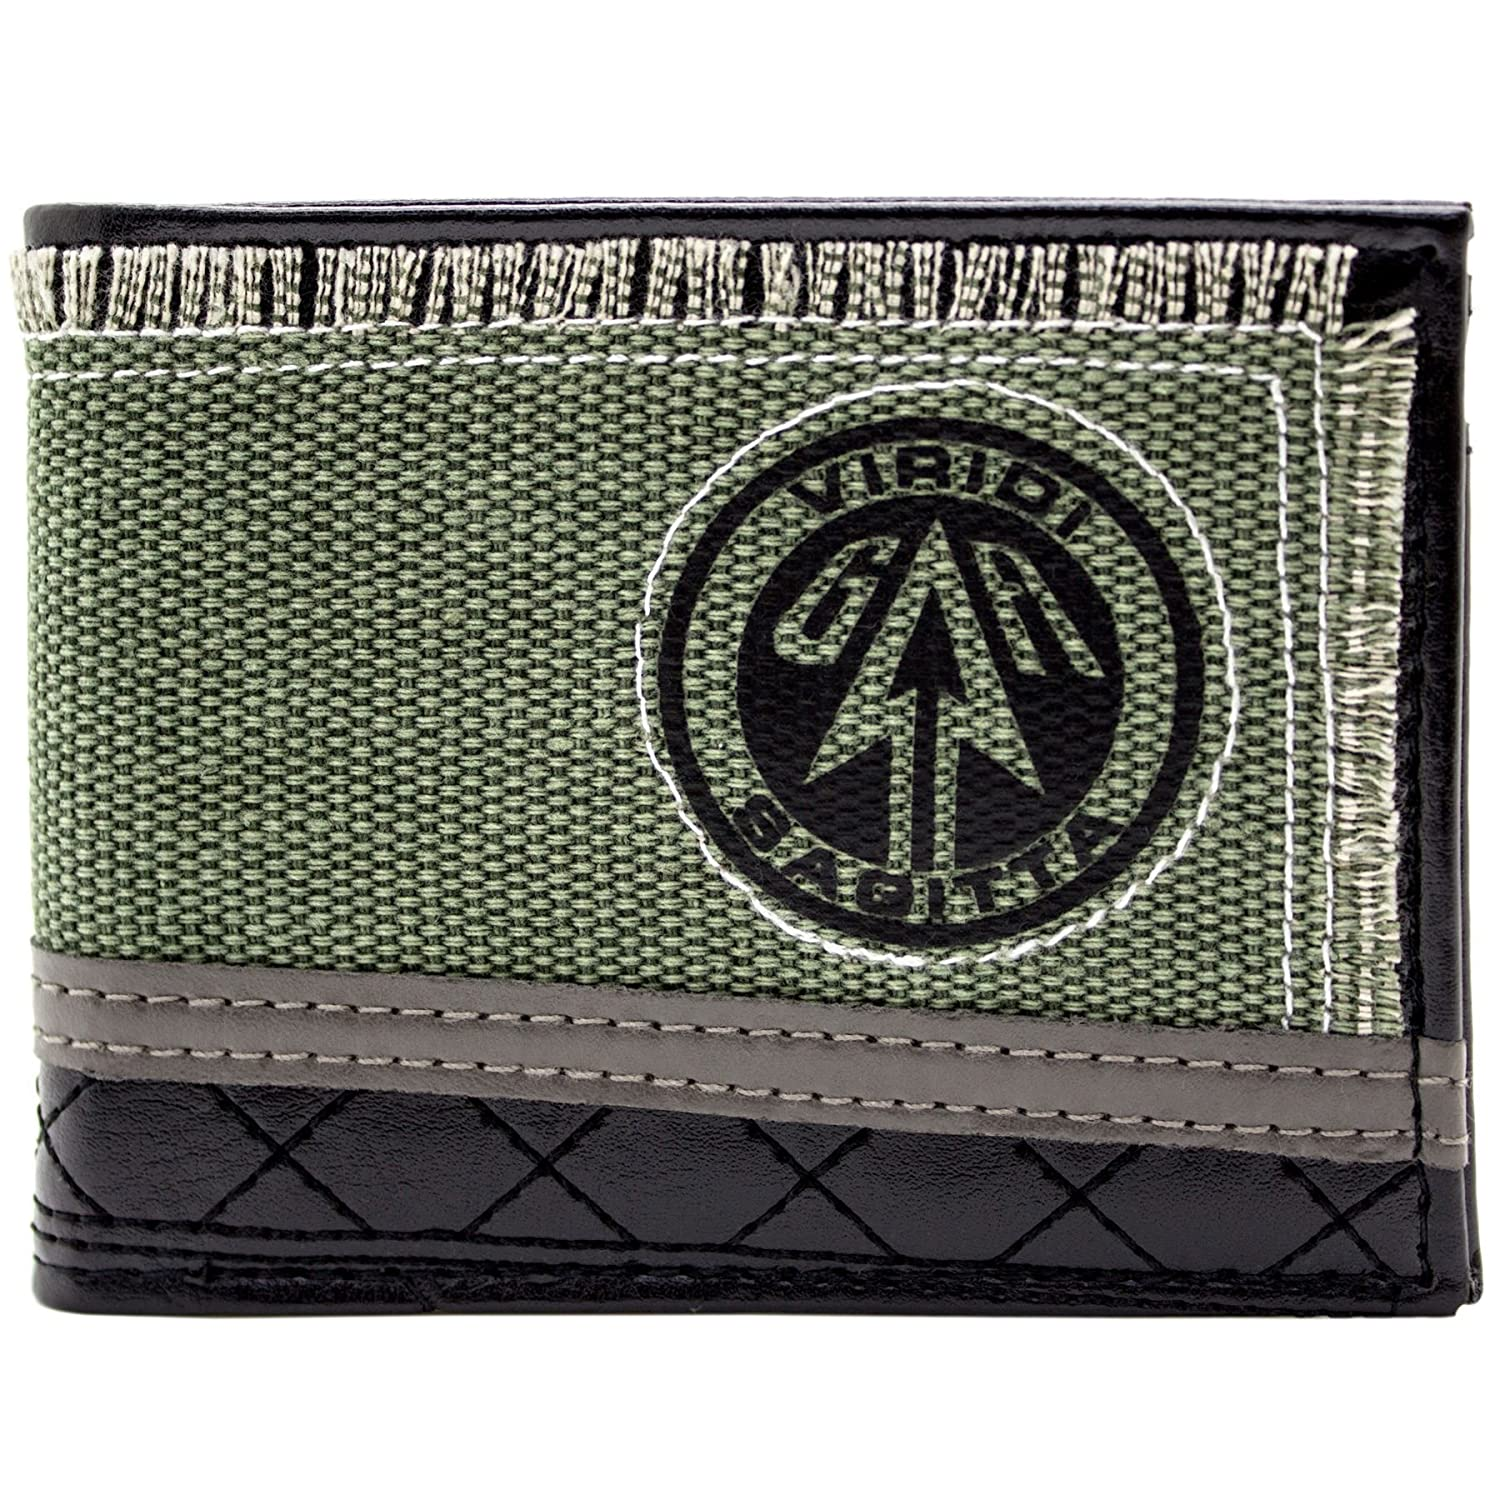 Cartera de DC Green Arrow viridi Sagitta Verde 28851